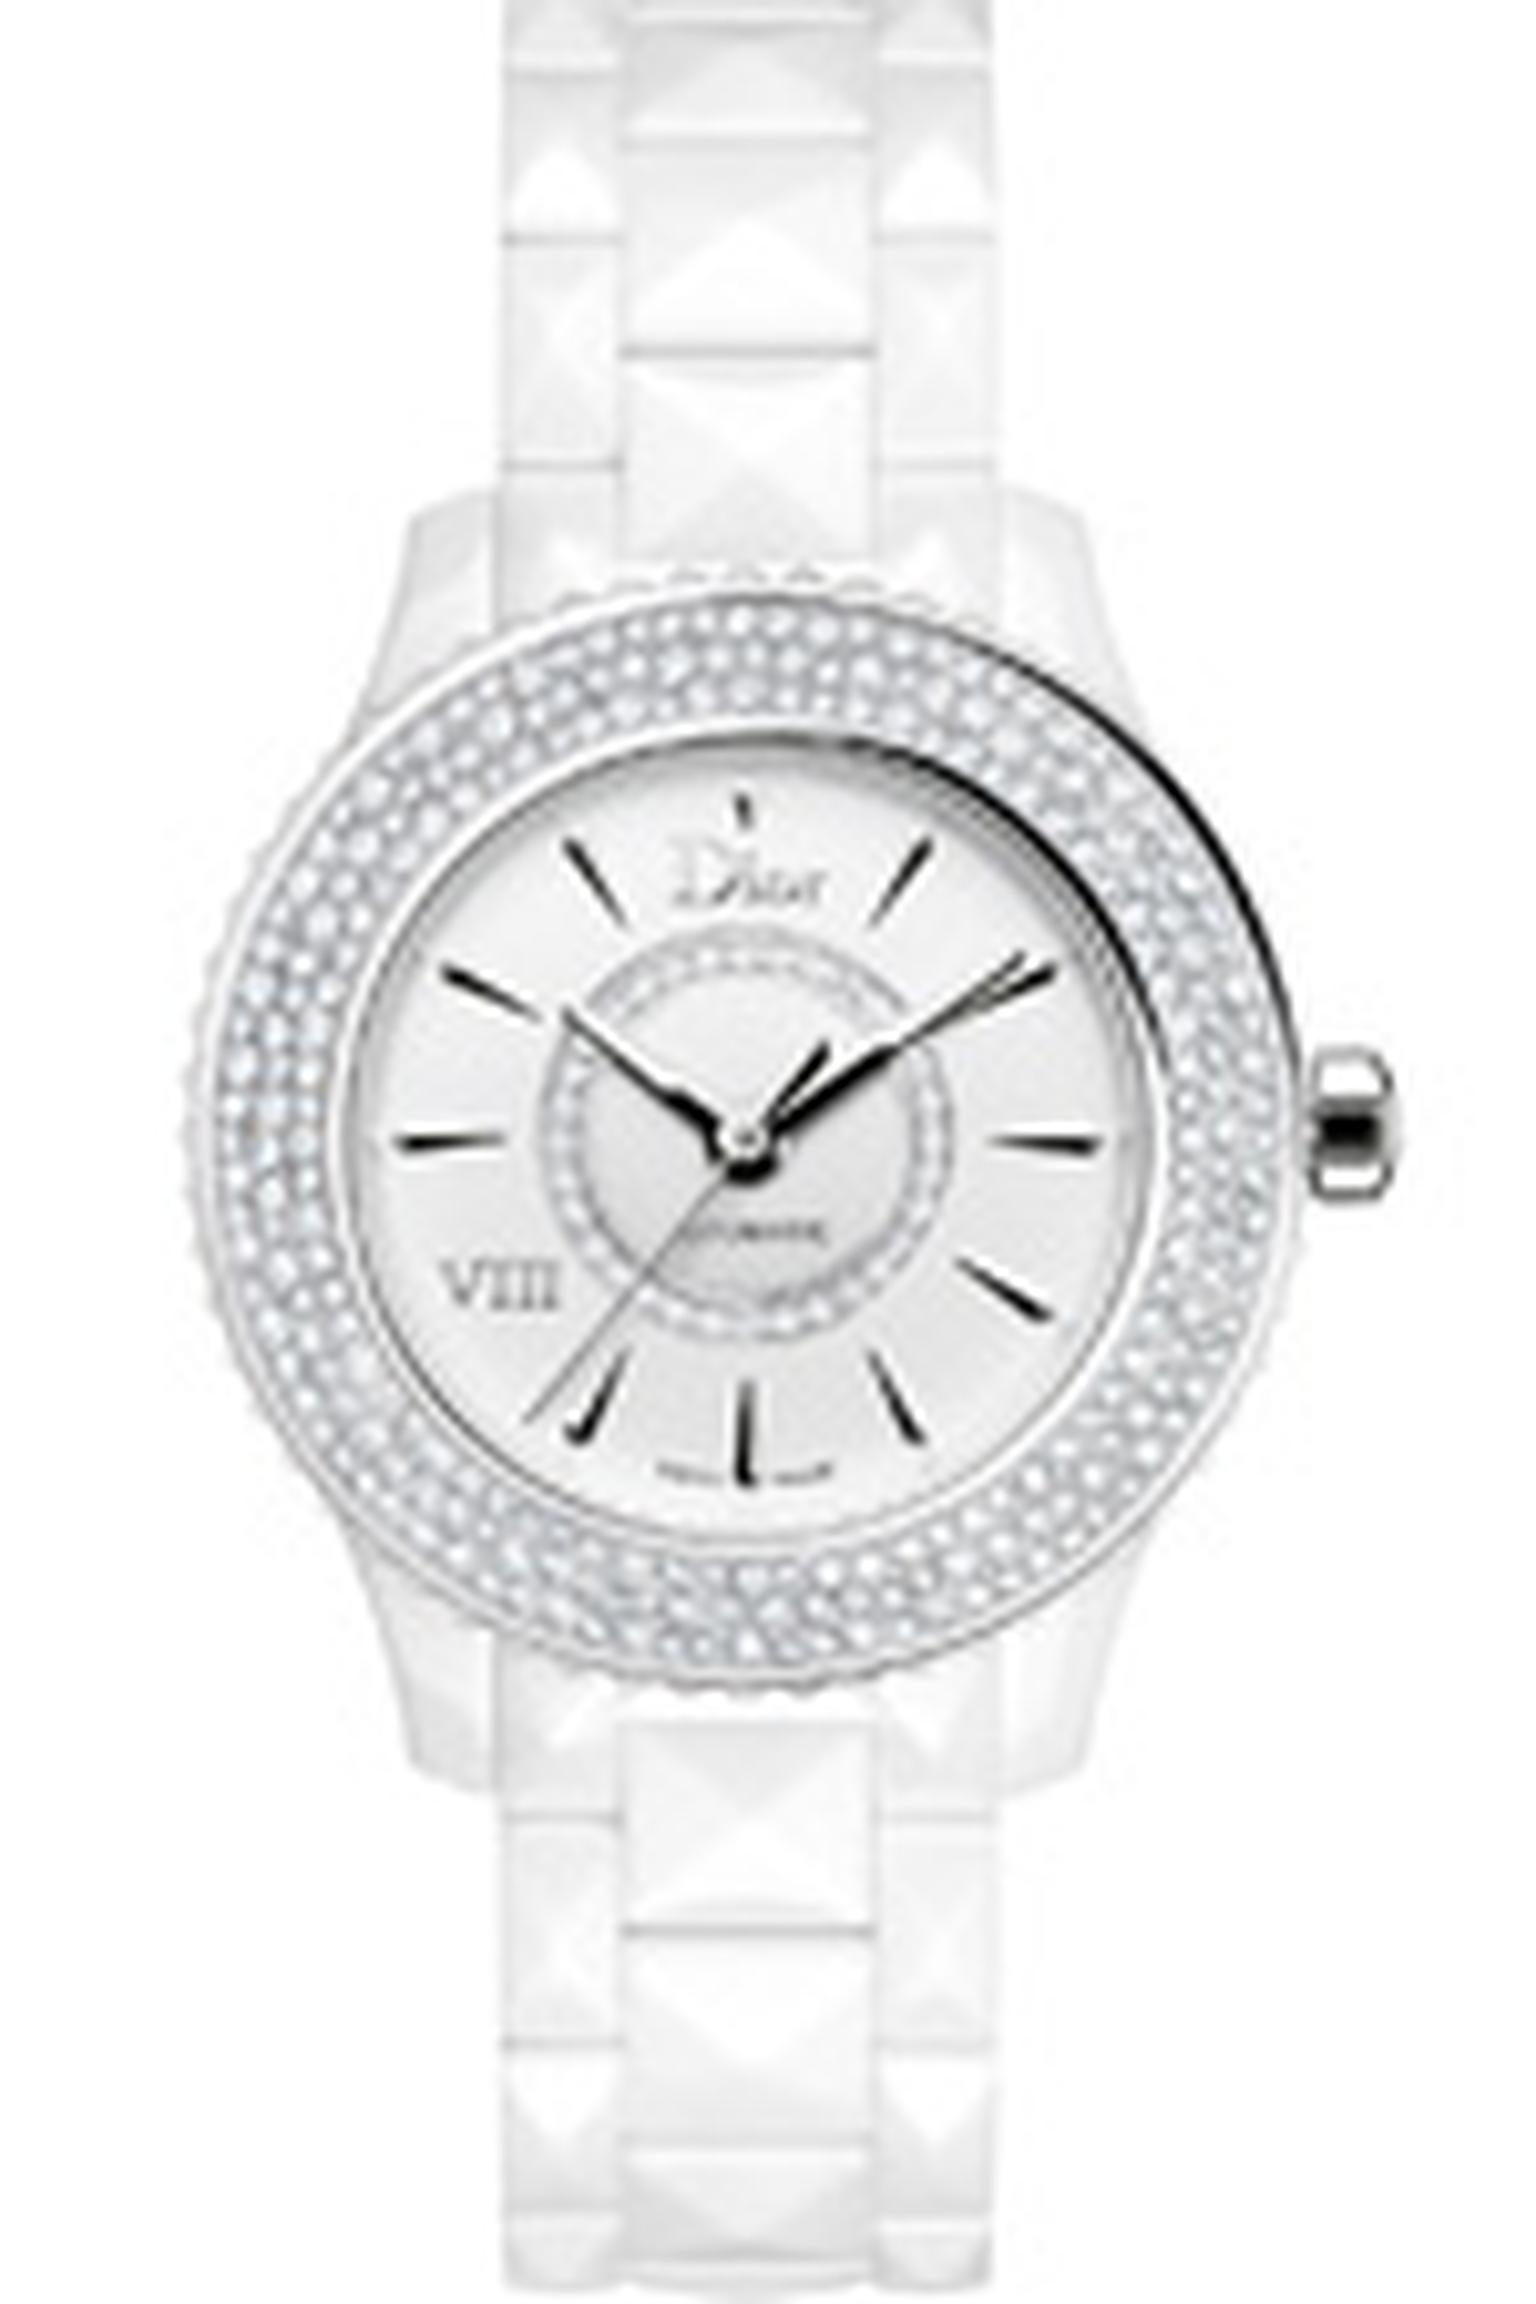 DIOR-VIII-WHITE-AUTO-DIAMOND-SNOW-SET-BEZEL-38mmHP